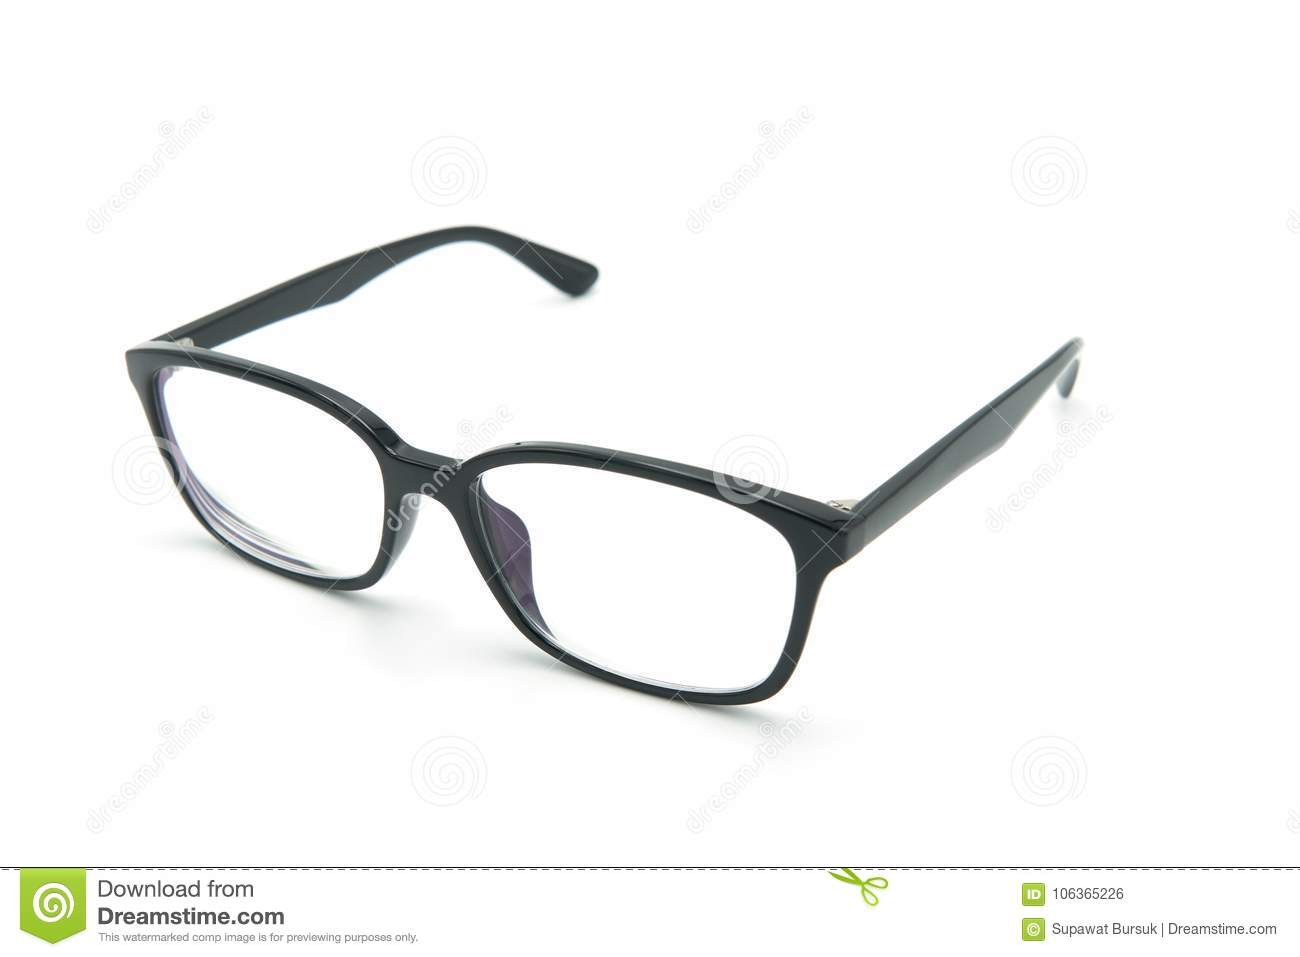 Black eye glasses spectacles with shiny black frame For reading daily life To a person with visual impairment. White background